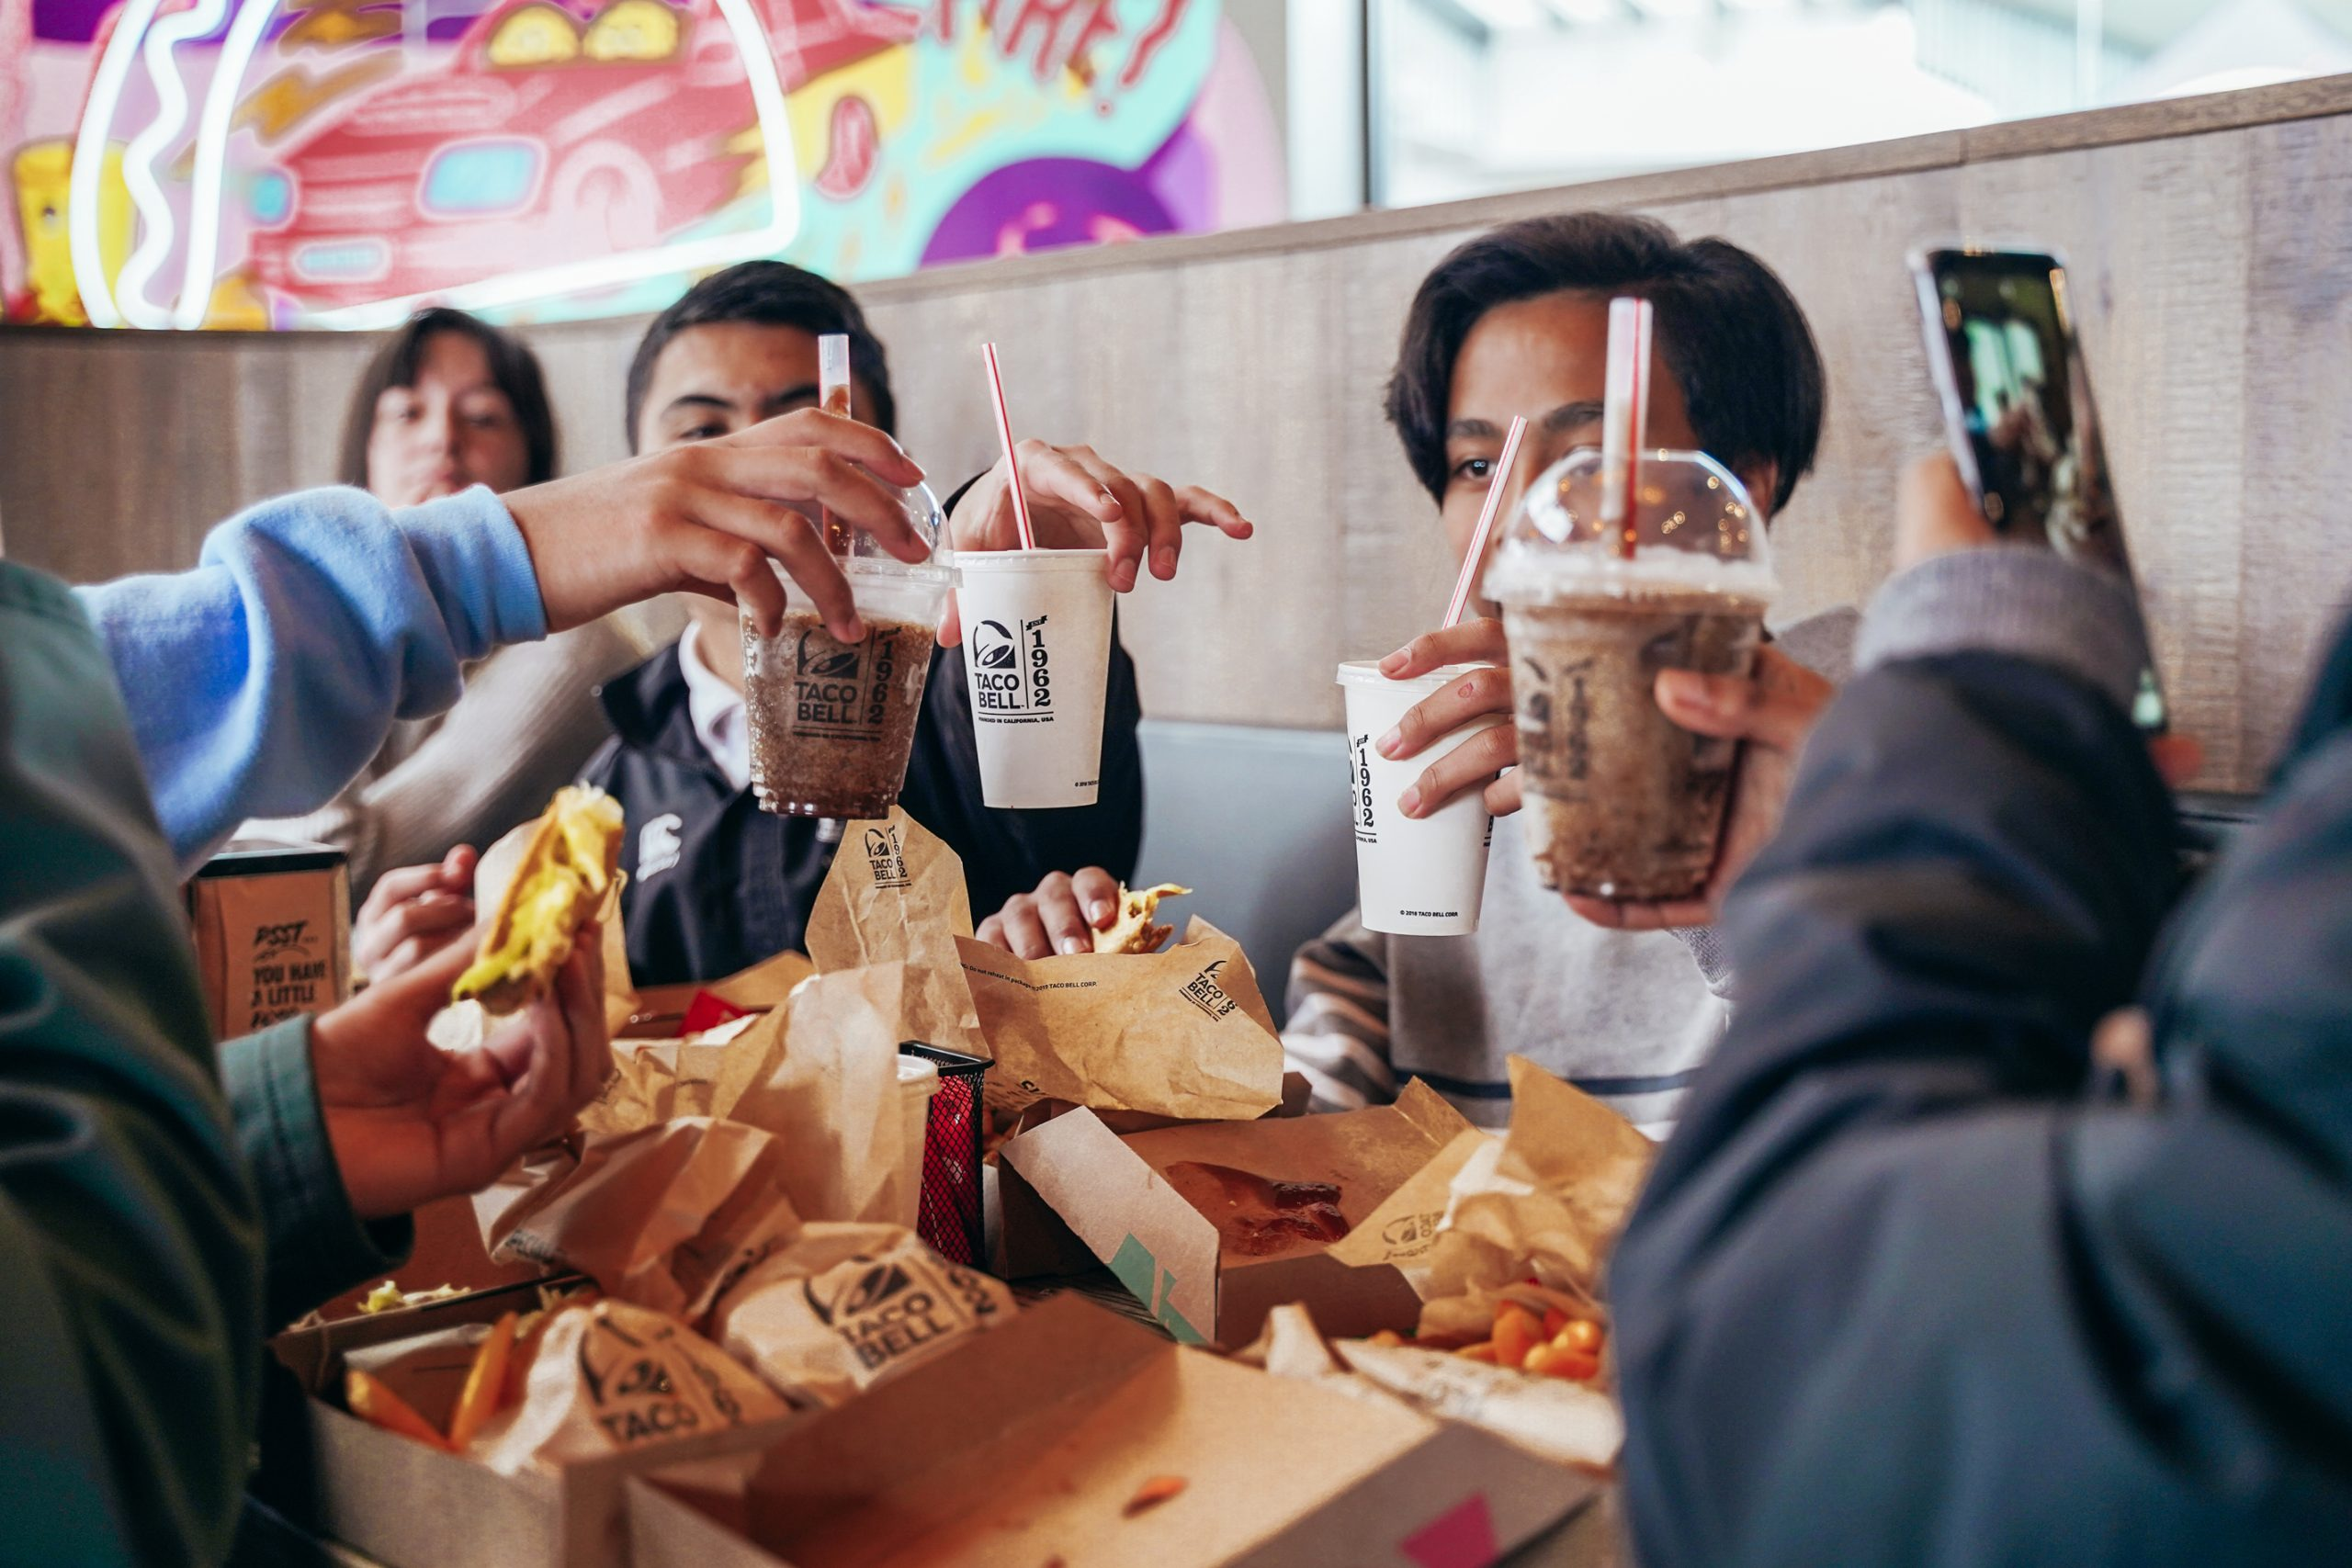 Friends enjoying Taco Bell food and drinks